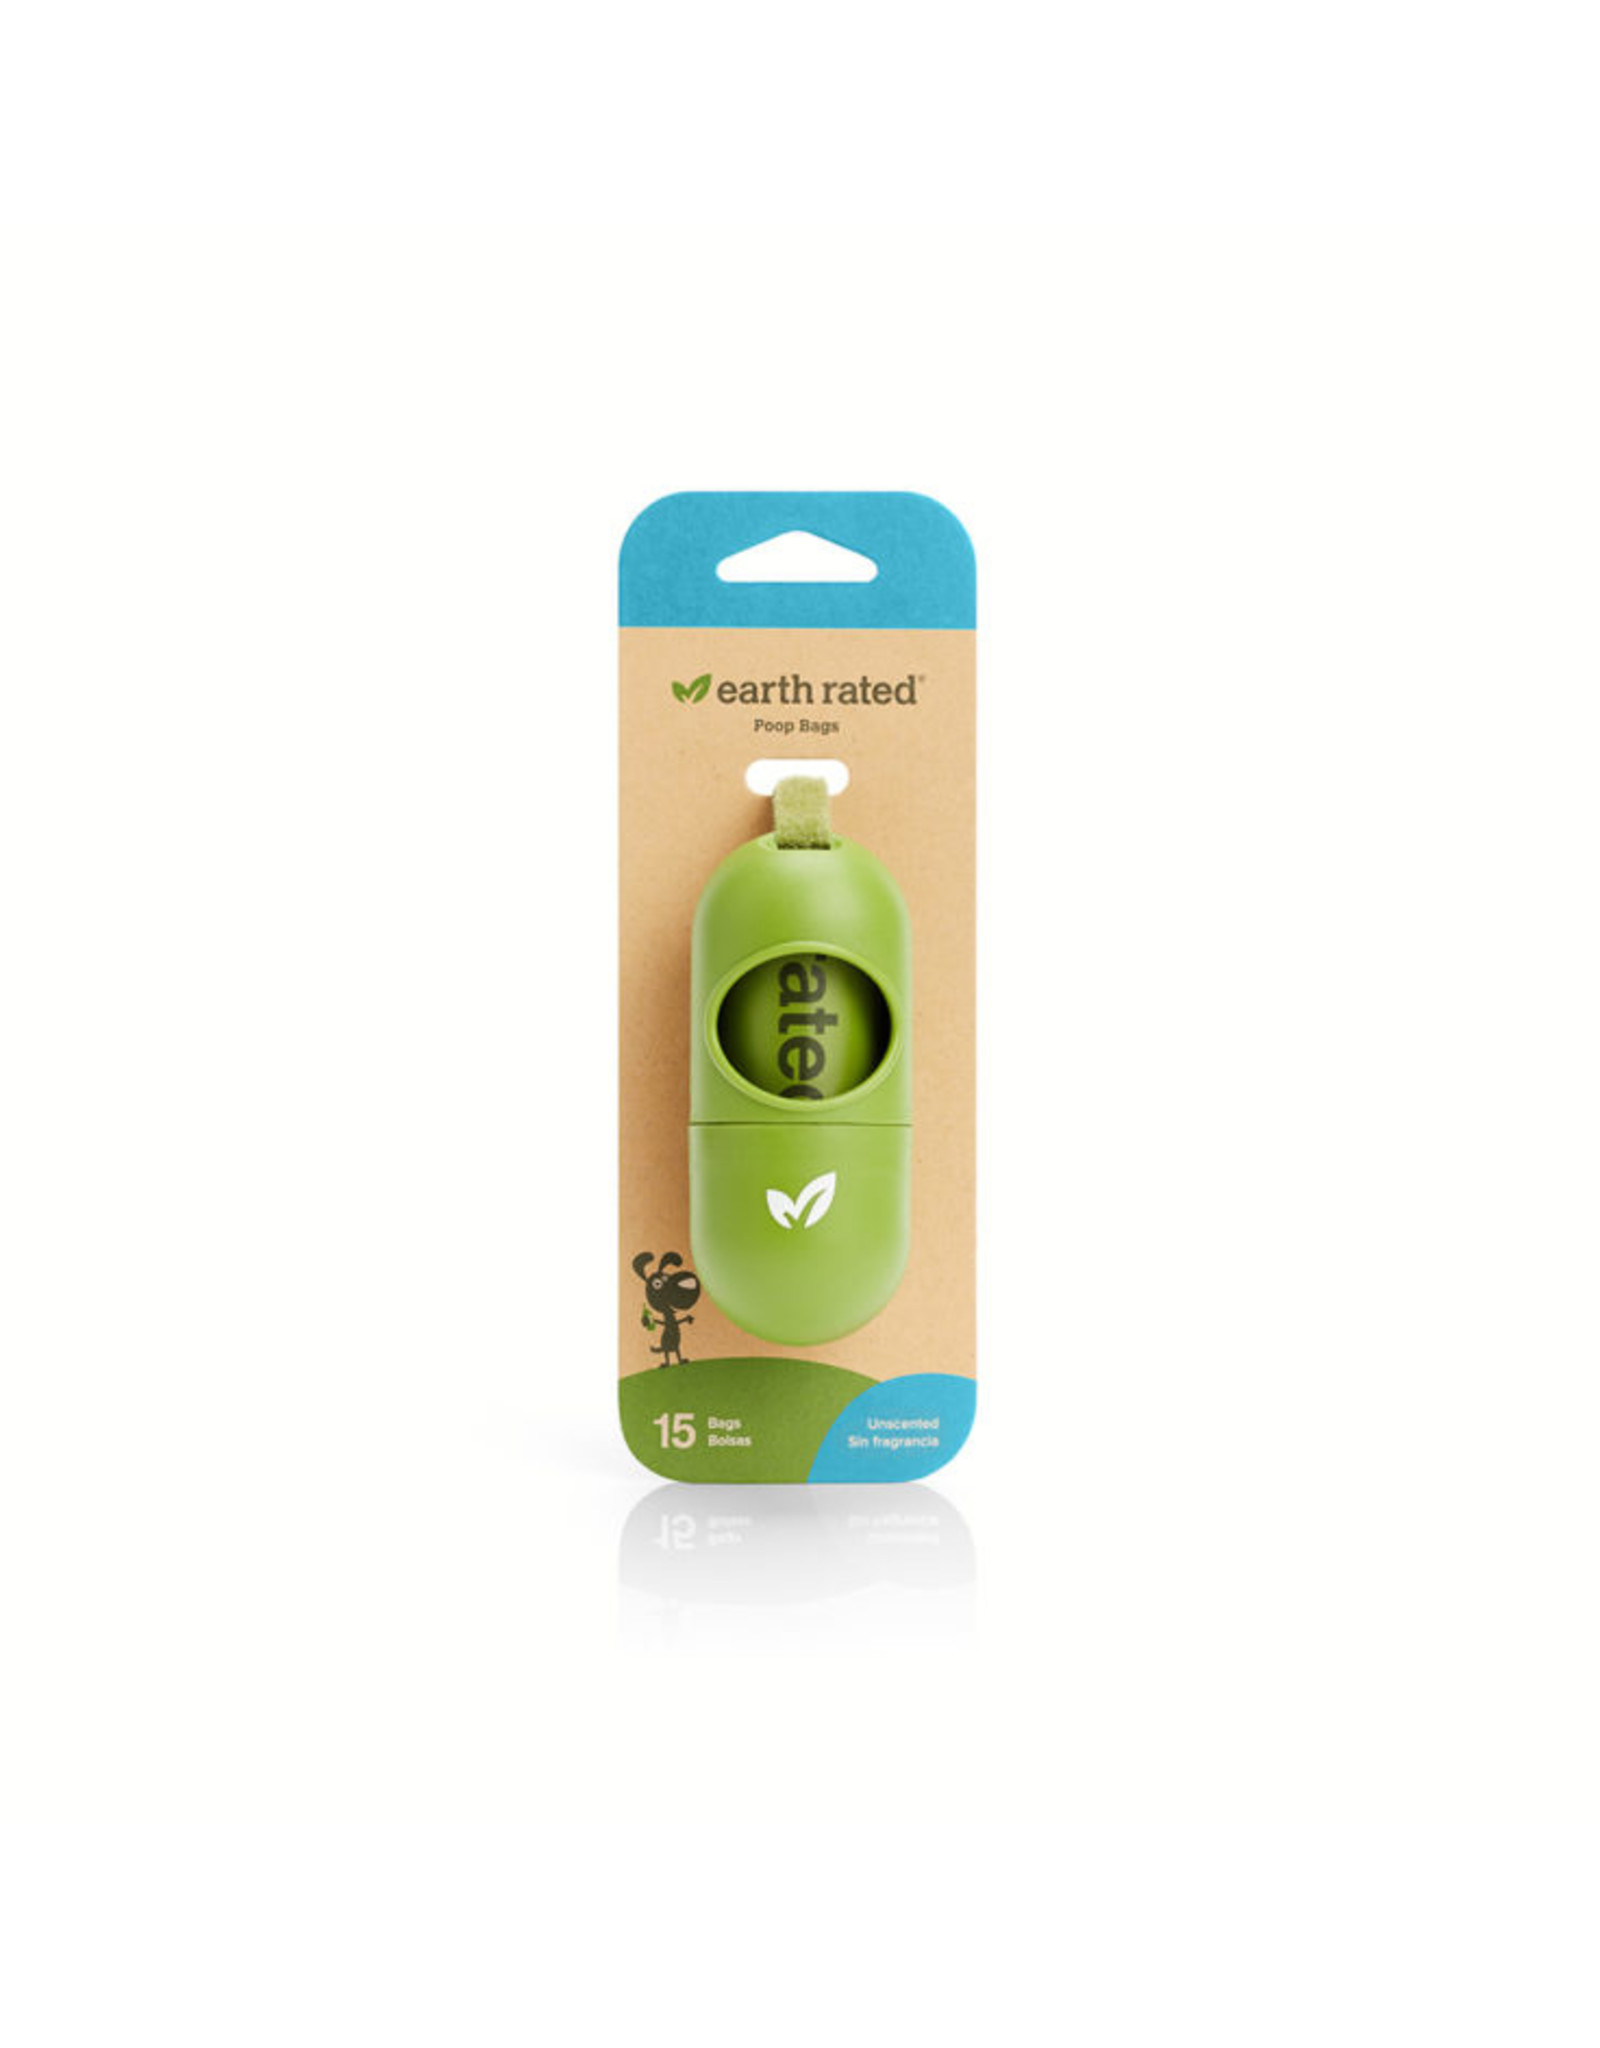 Earth Rated Earth Rated Green Dispenser Unscented